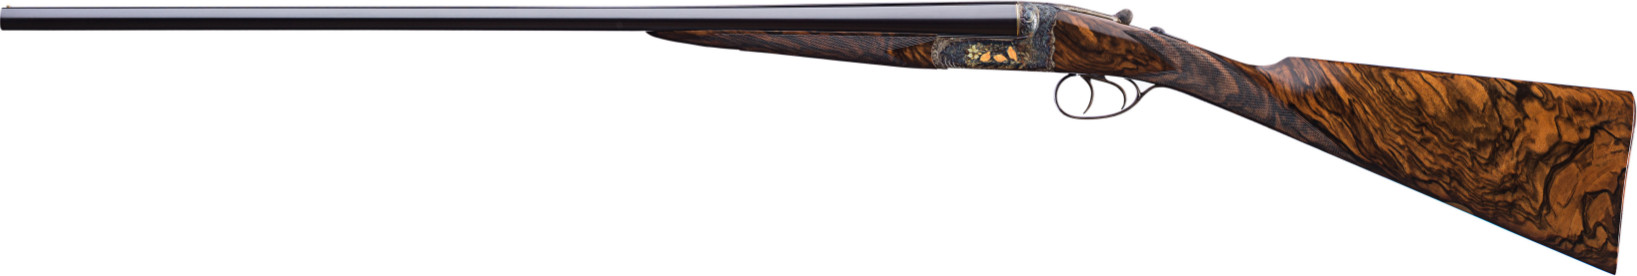 Hand Detachable Lock (Droplock) Shotgun by Westley Richards